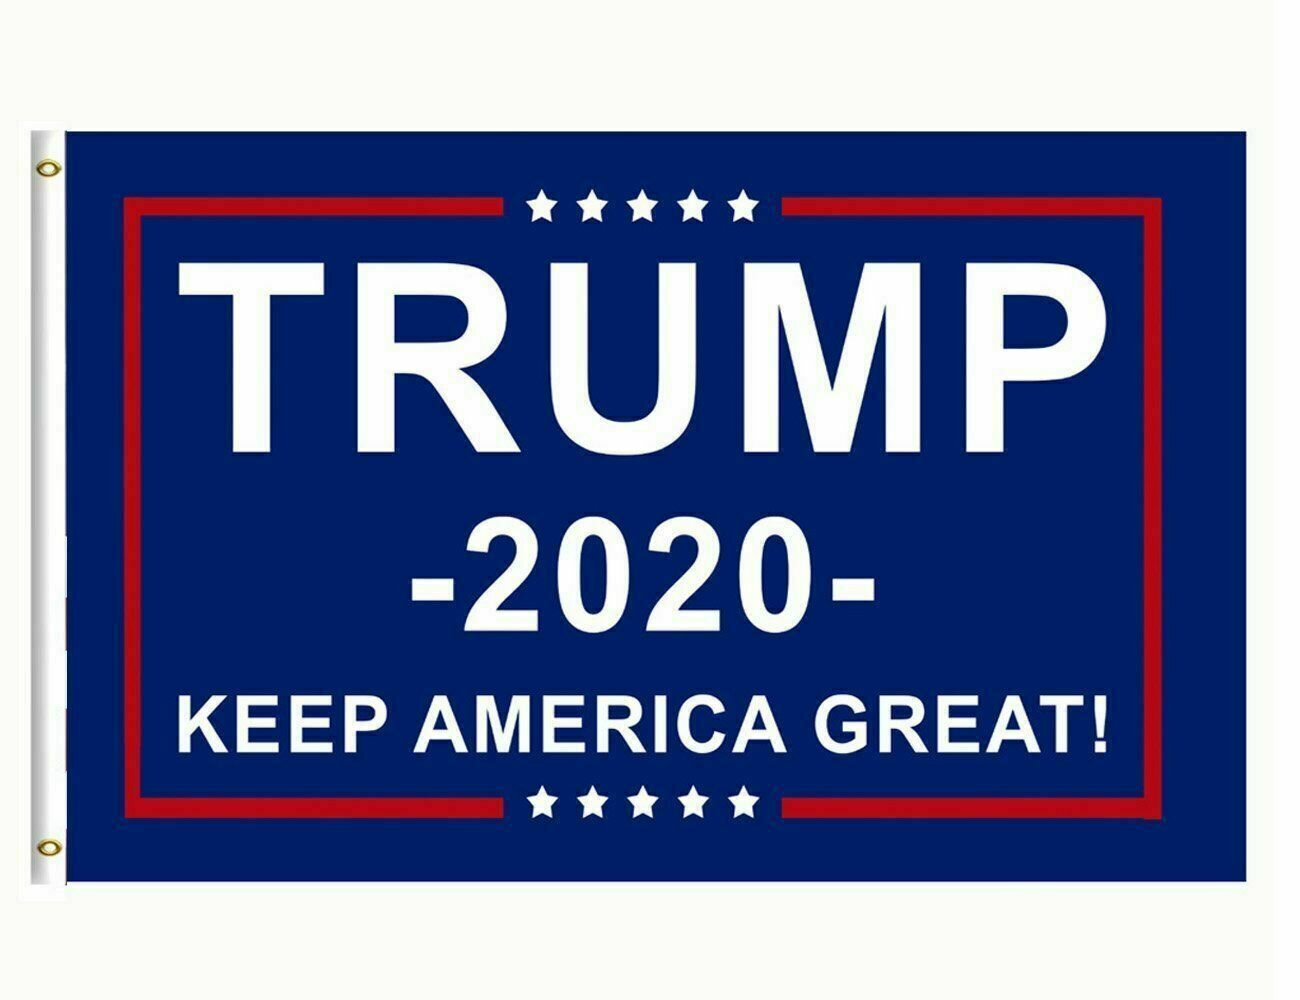 Trump 2020 Re-Election Flag 3x5 Keep America Great (NOW IN STOCK)